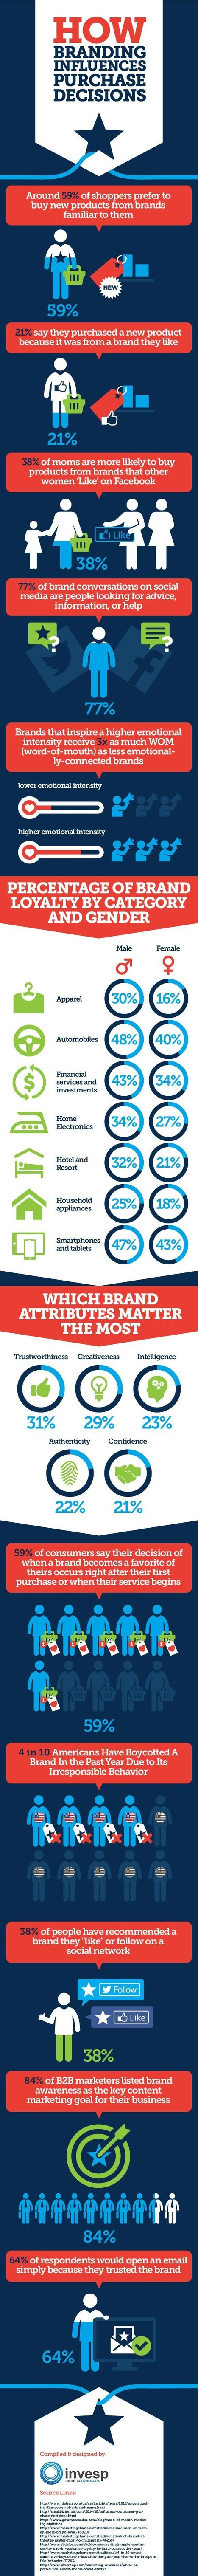 The Impact of Brand on a Consumer Purchase Decision | Marketing Technology | Integrated Brand Communications | Scoop.it